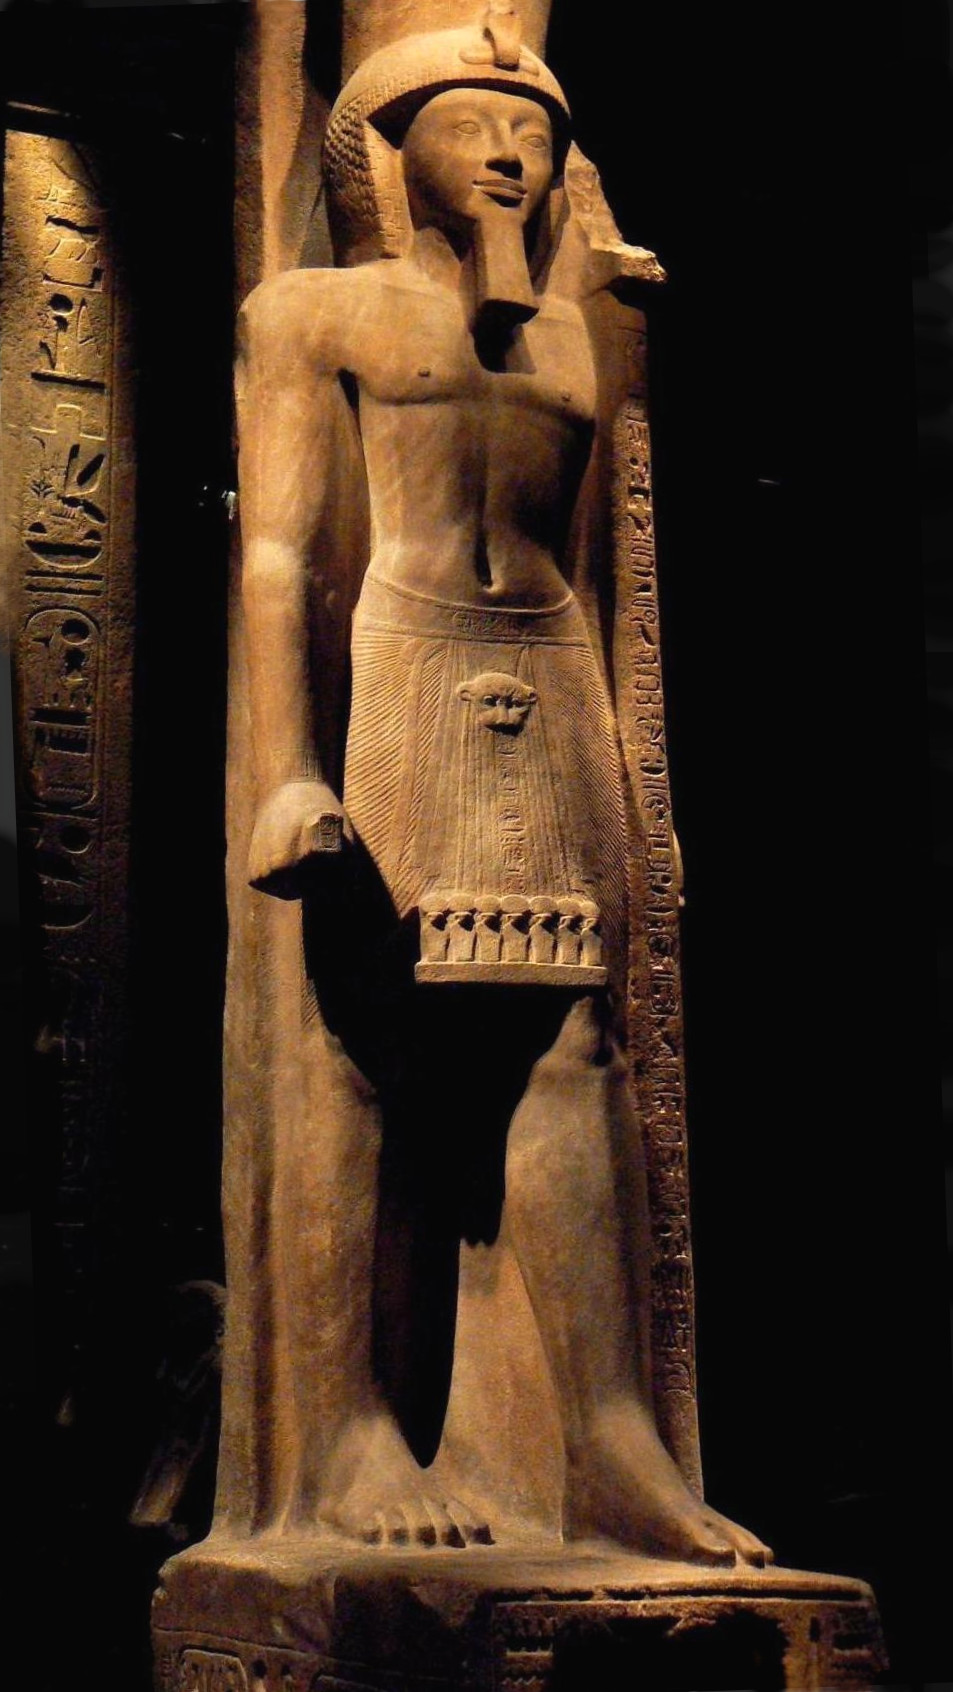 3000 Year Old Statue Unearthed In Cairo, Egypt